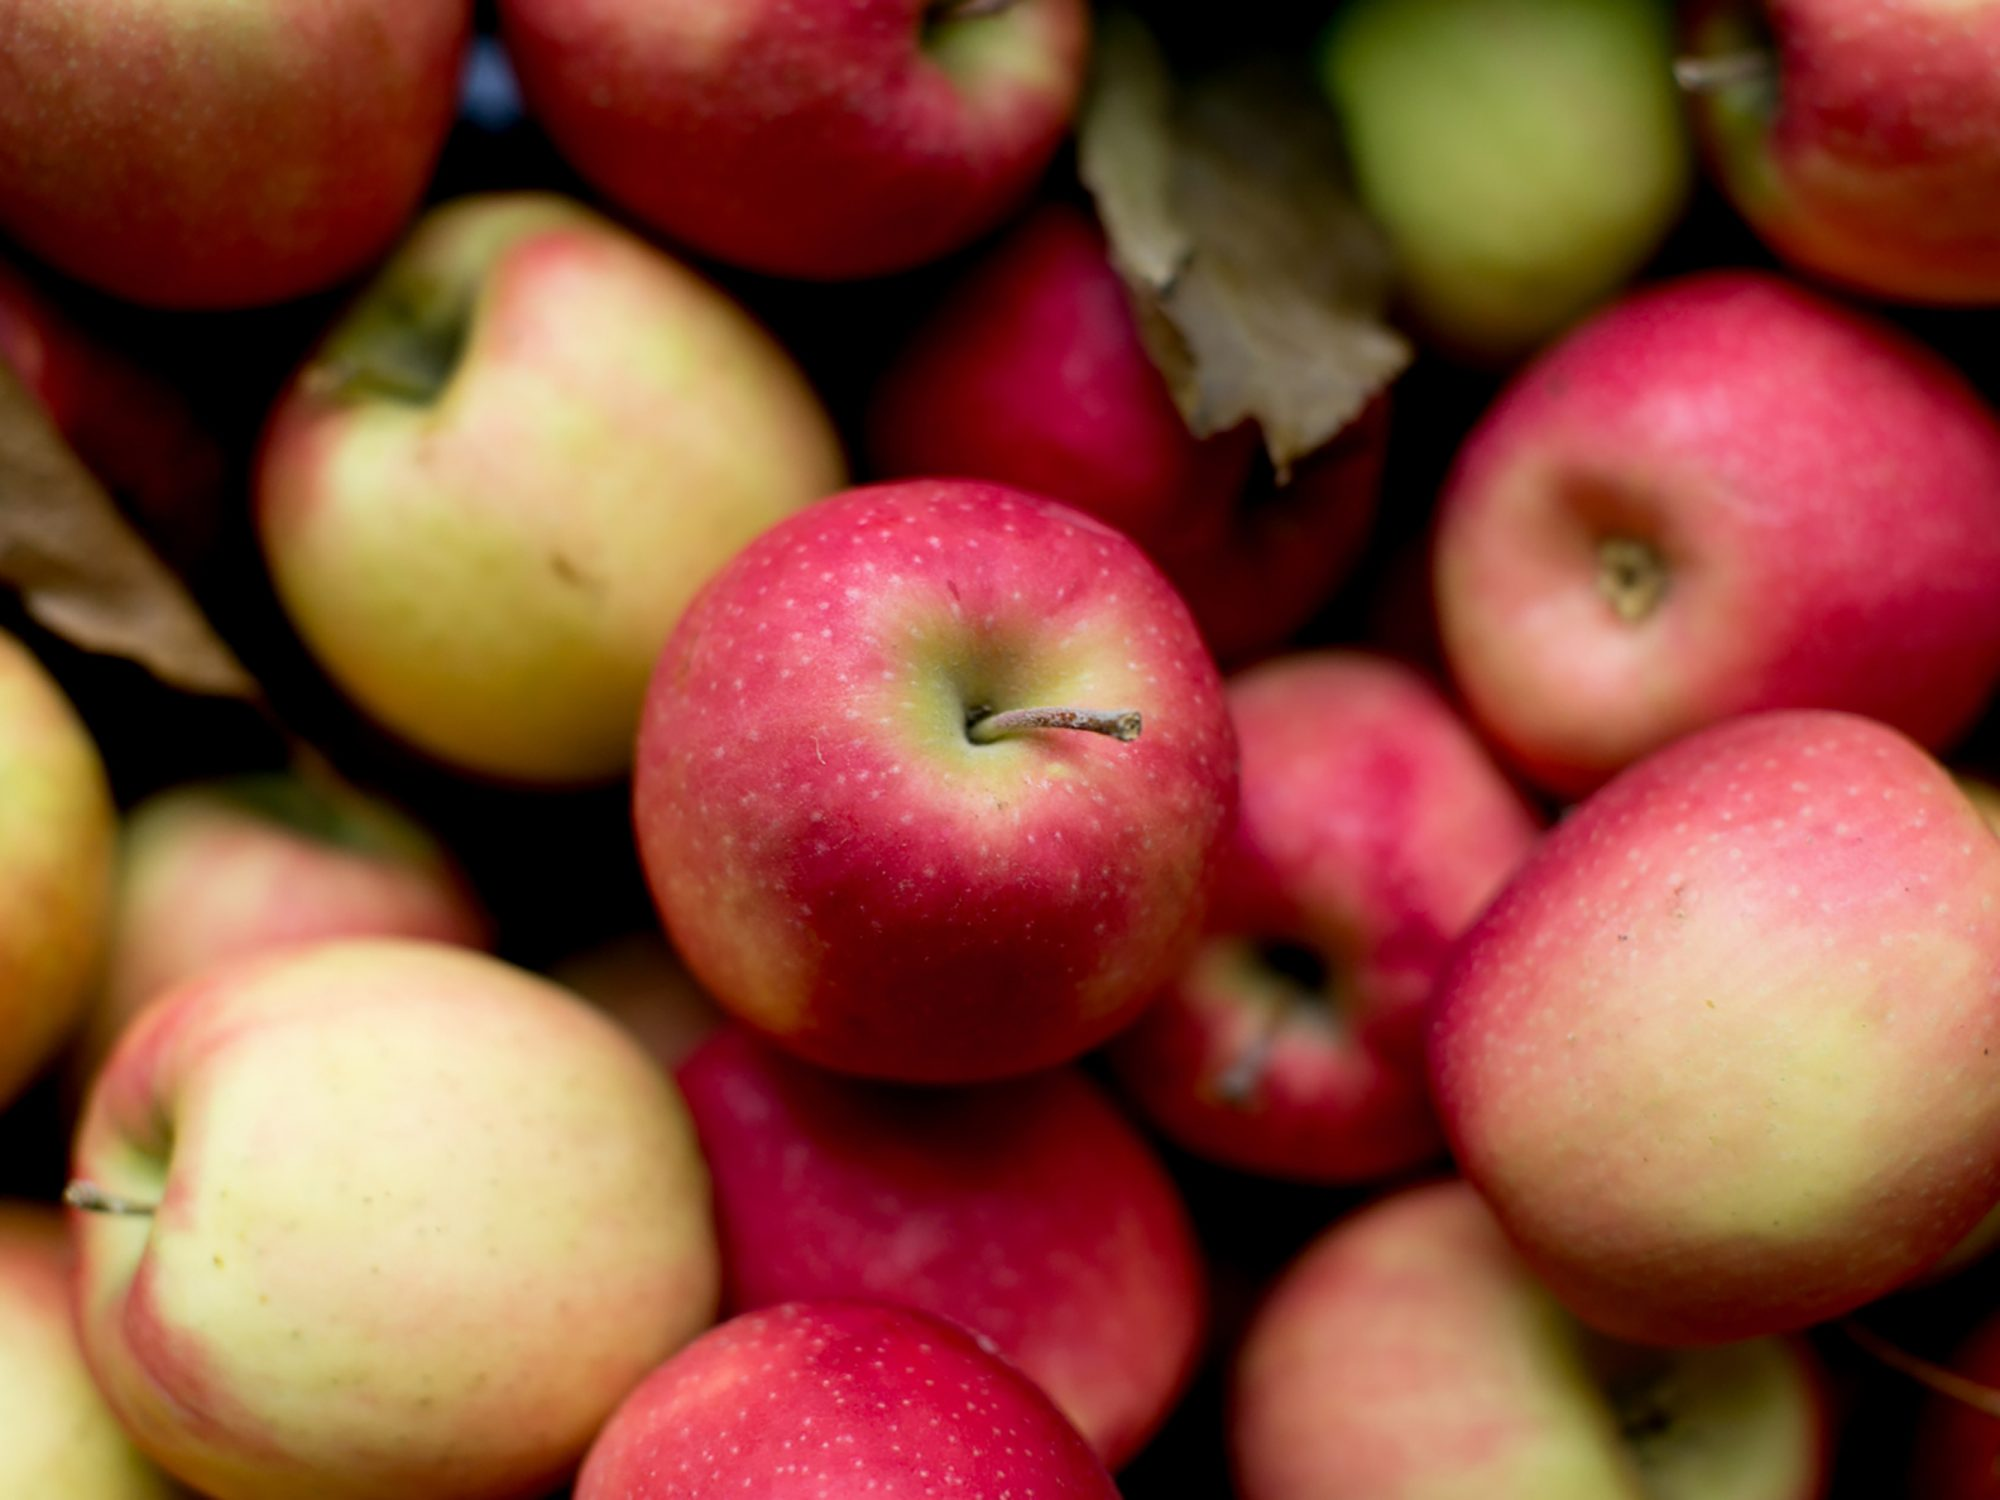 Why Are People Not Eating Apples Anymore?